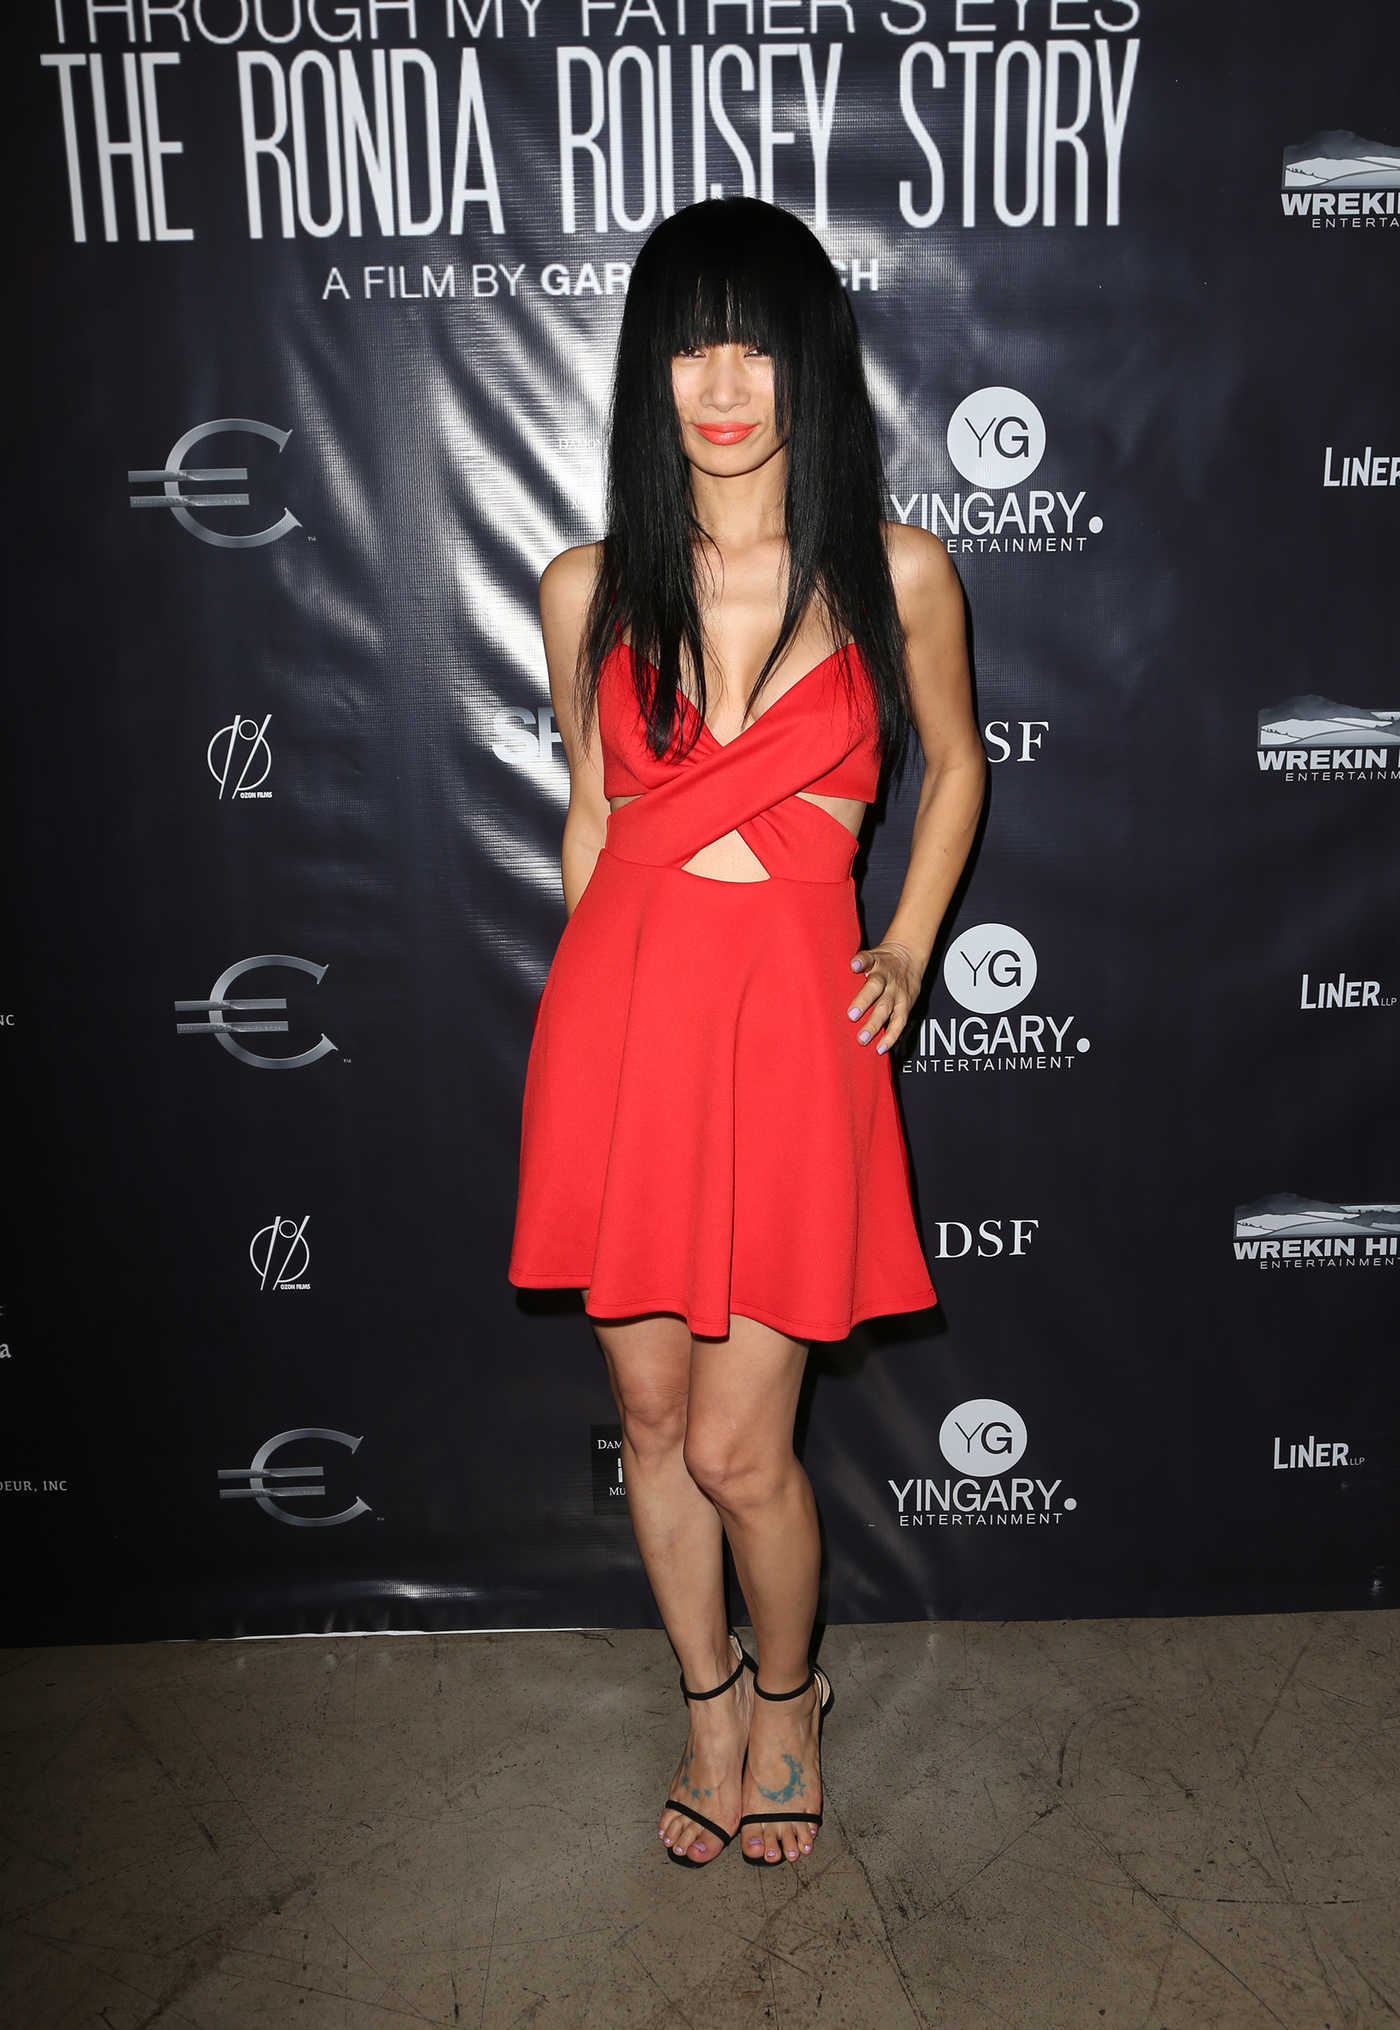 Bai Ling at the Through My Father's Eyes: The Ronda Rousey Story Premiere at Chinese Mann Theater in Hollywood 12/30/2016